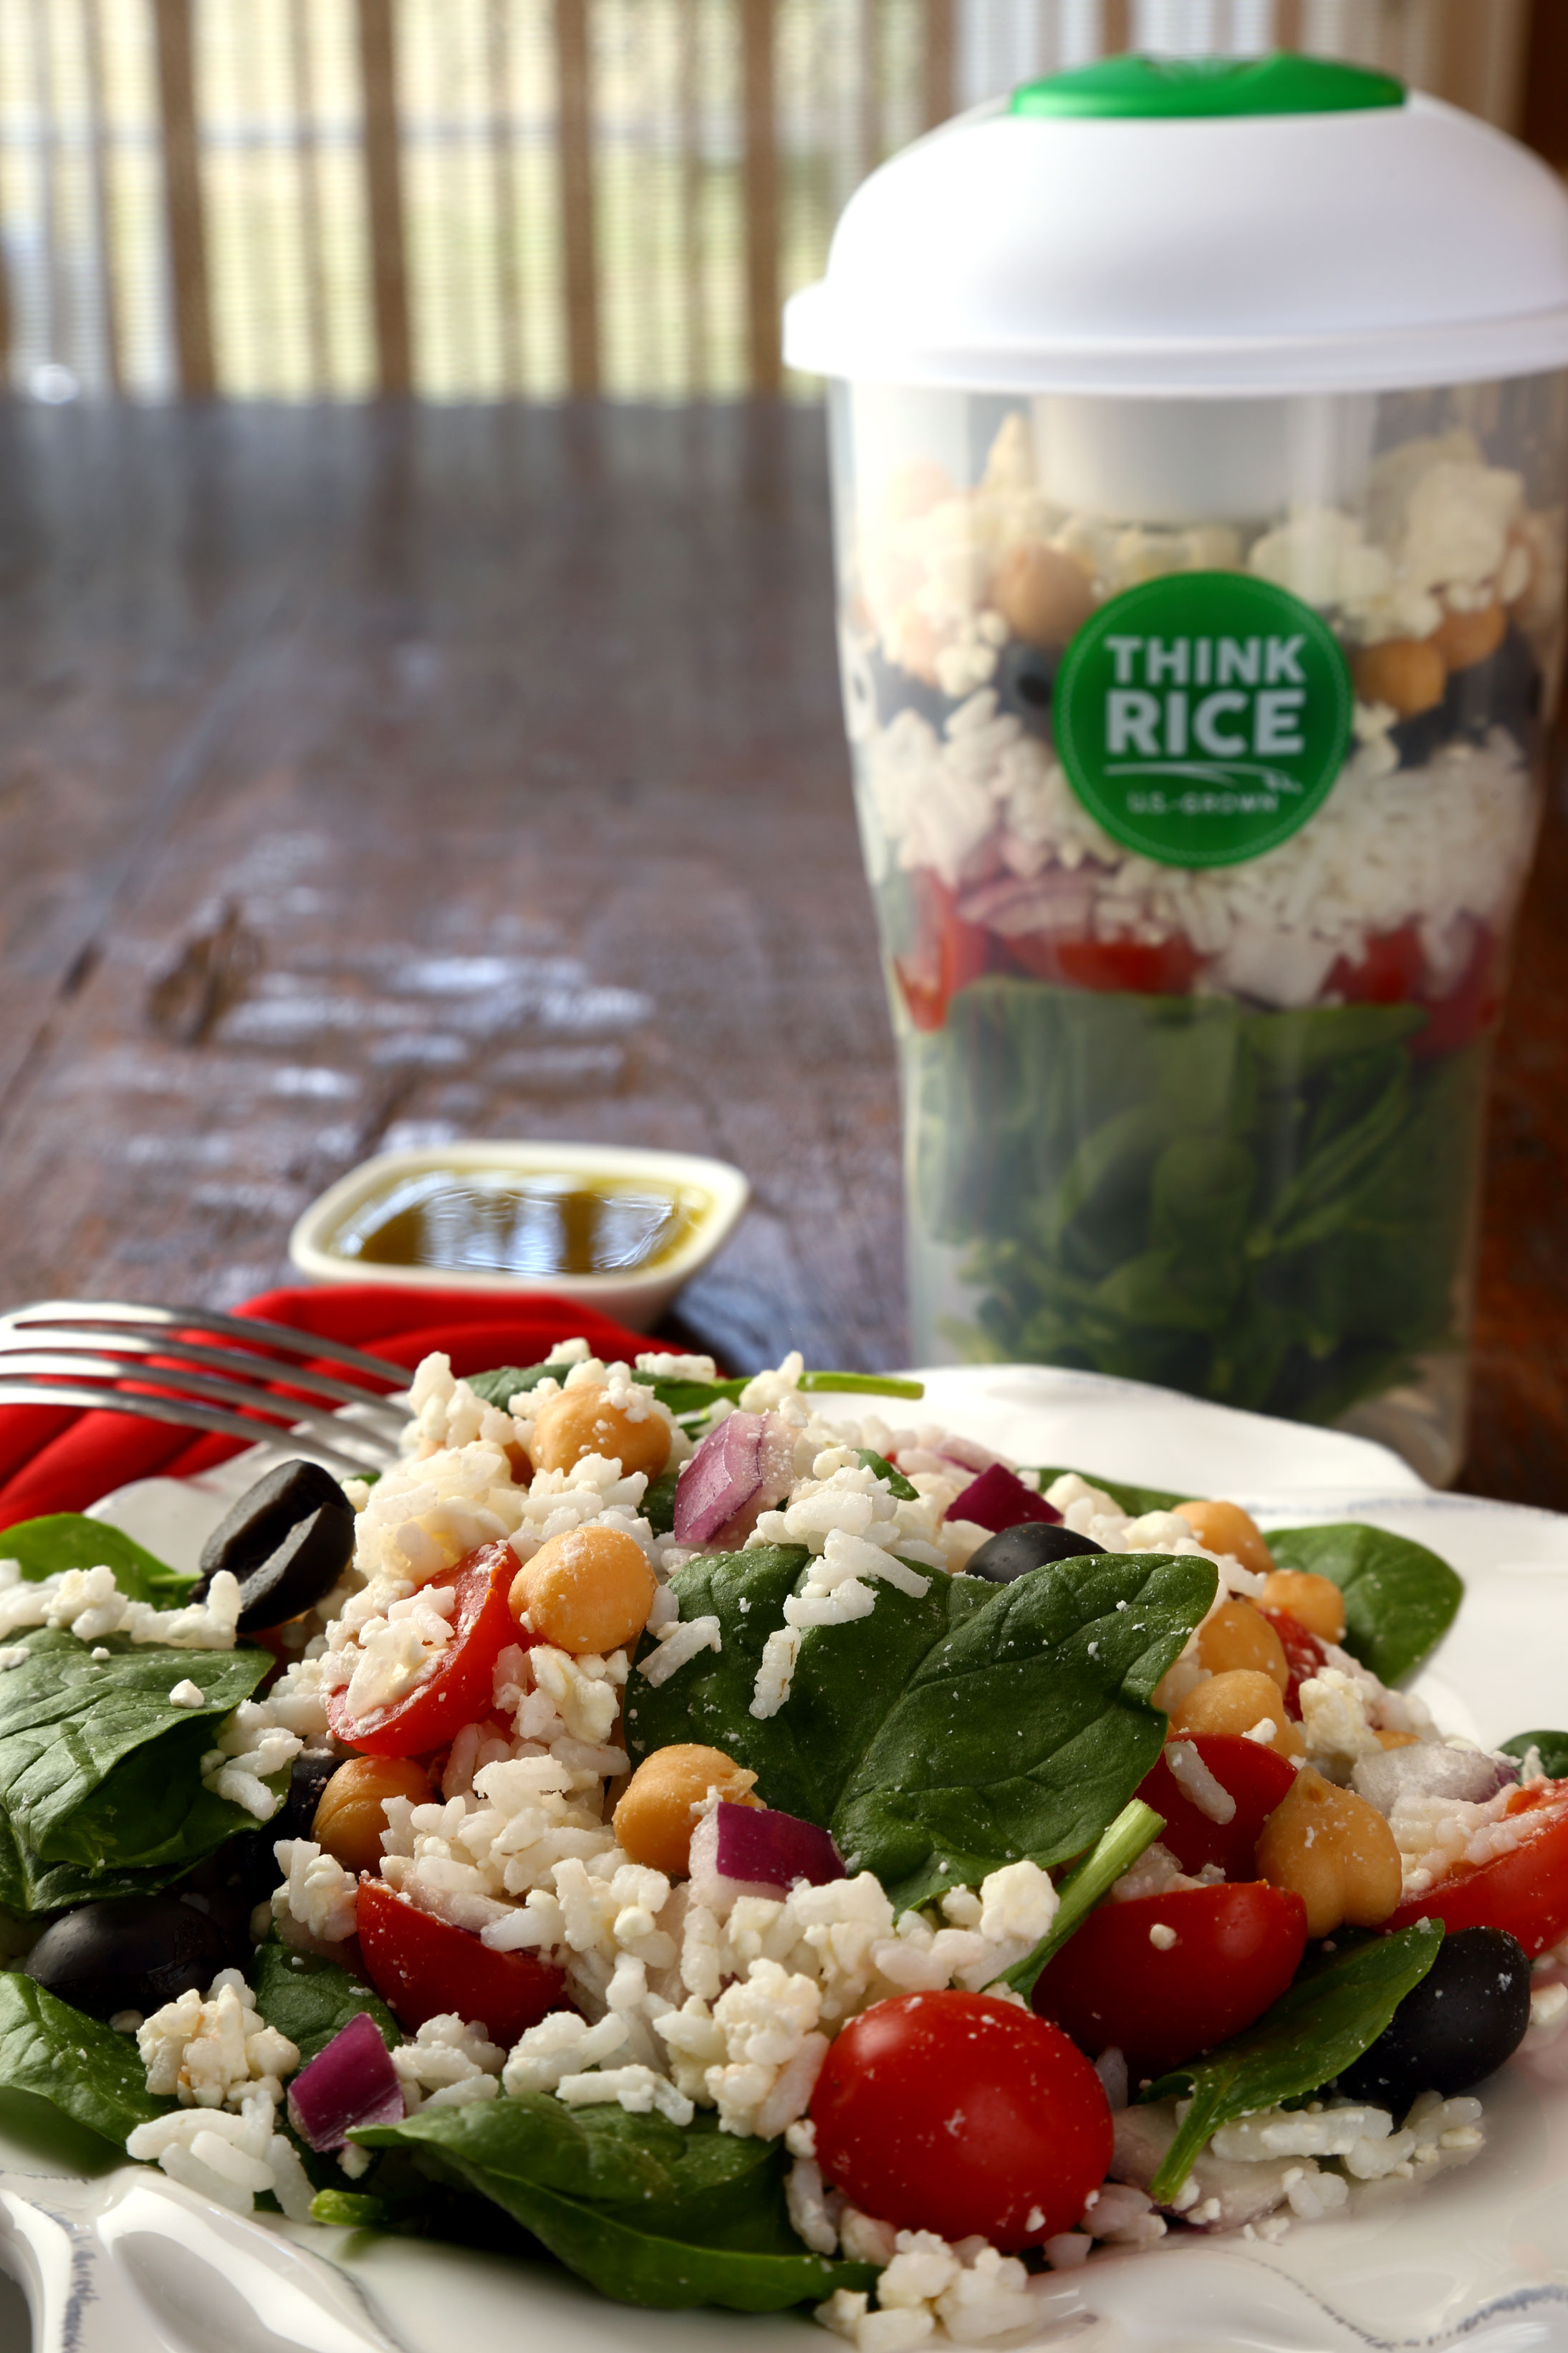 Colorful salad-with-Think-Rice-Shaker